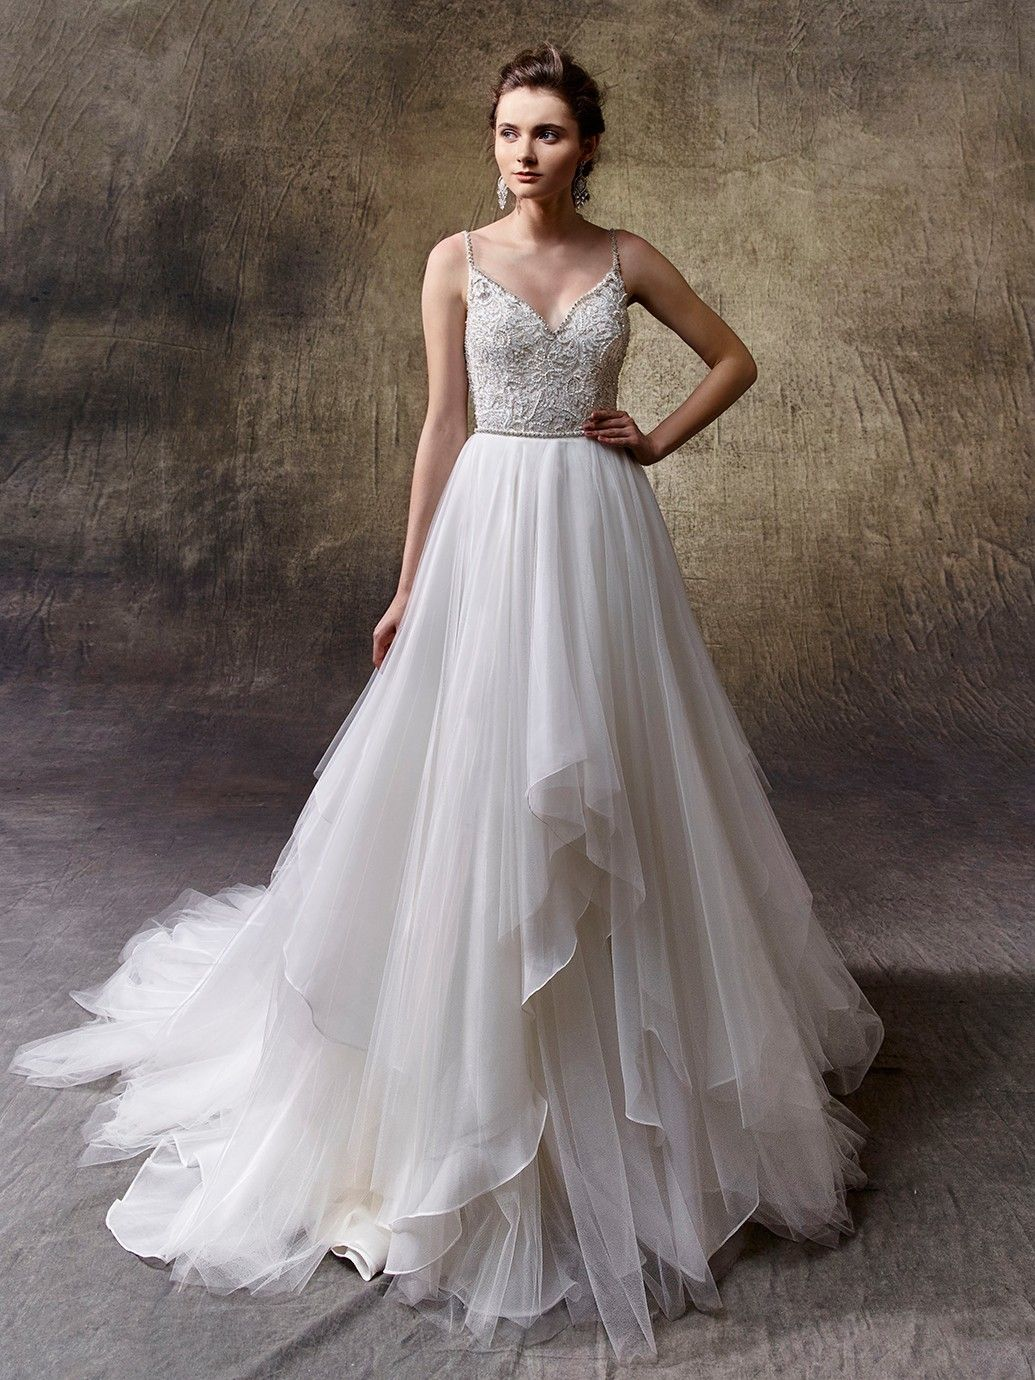 Enzoani Wedding Dress Find Enzoani And More At Here Comes The Bride